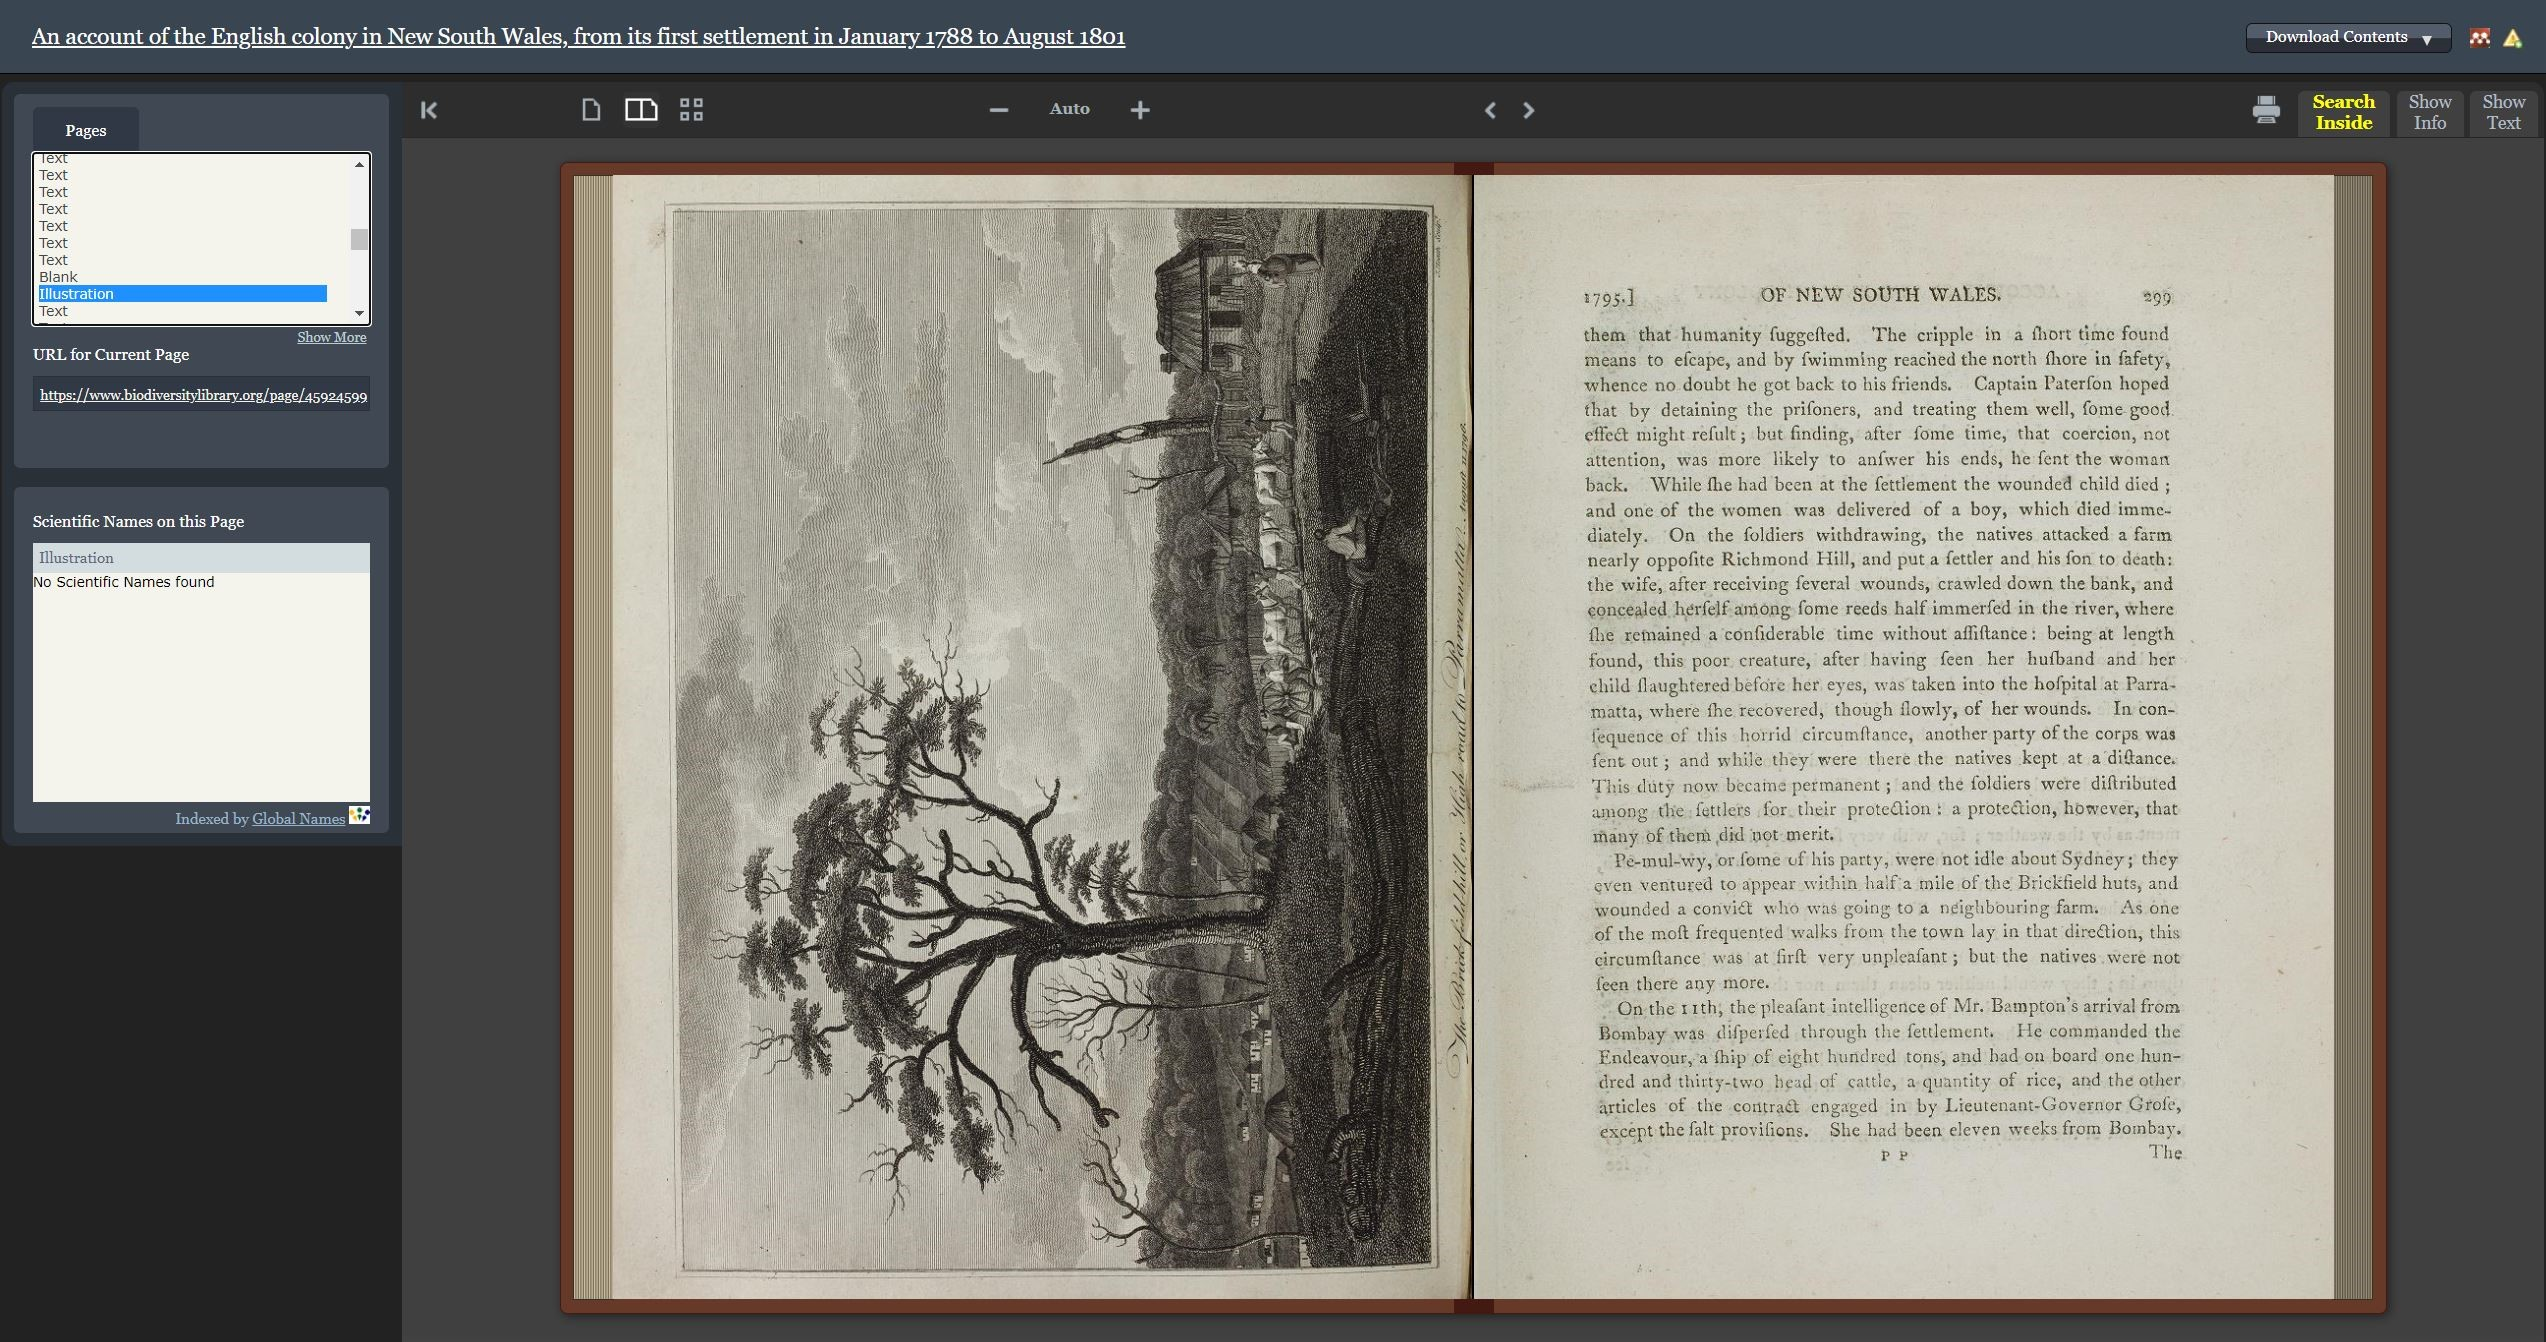 Screenshot of the book viewer in BHL with pages from An account of the English colony in New South Wales.